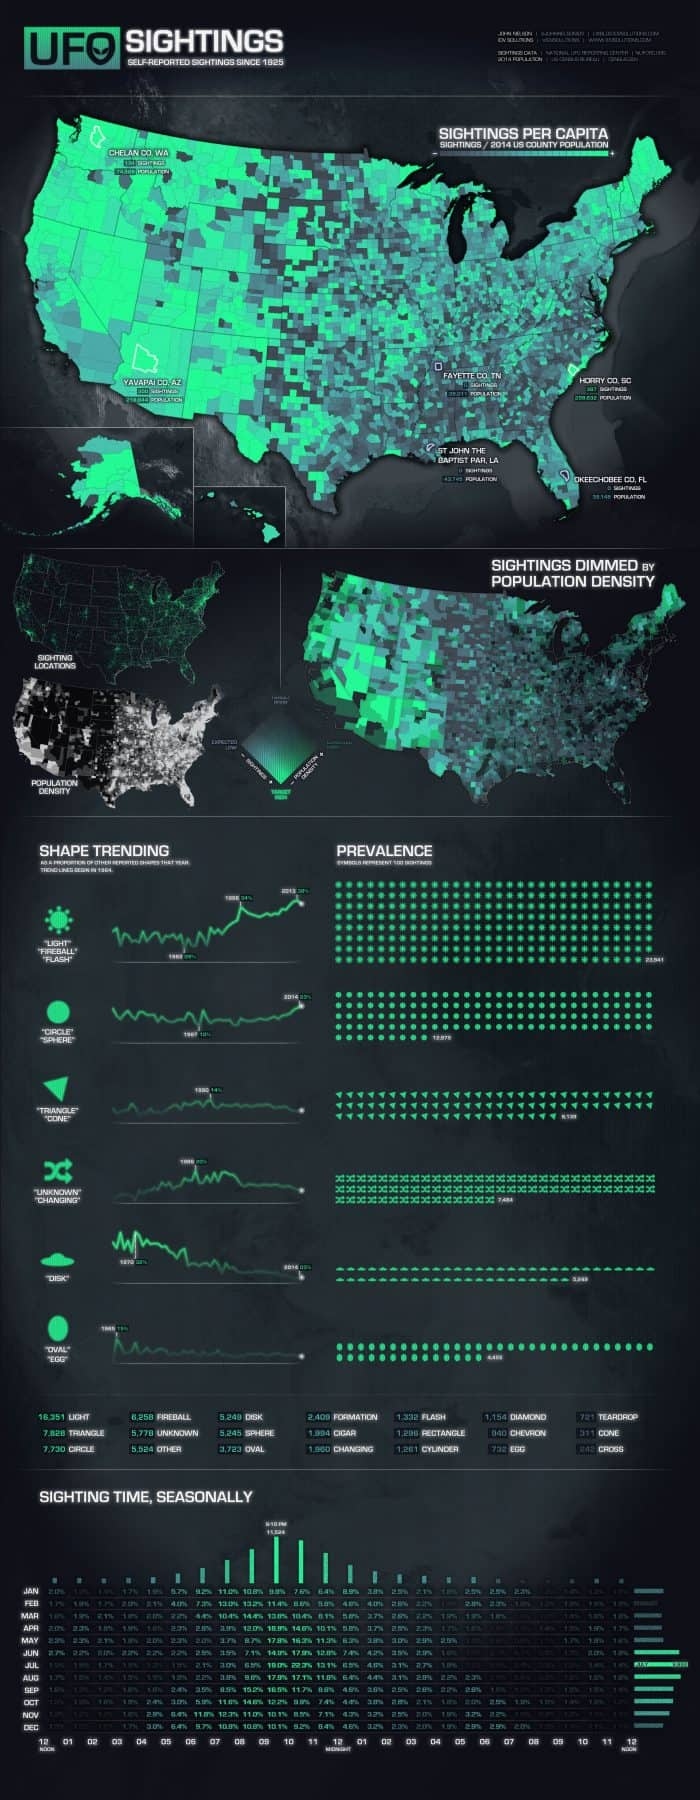 Every Reported UFO Sighting Since 1925